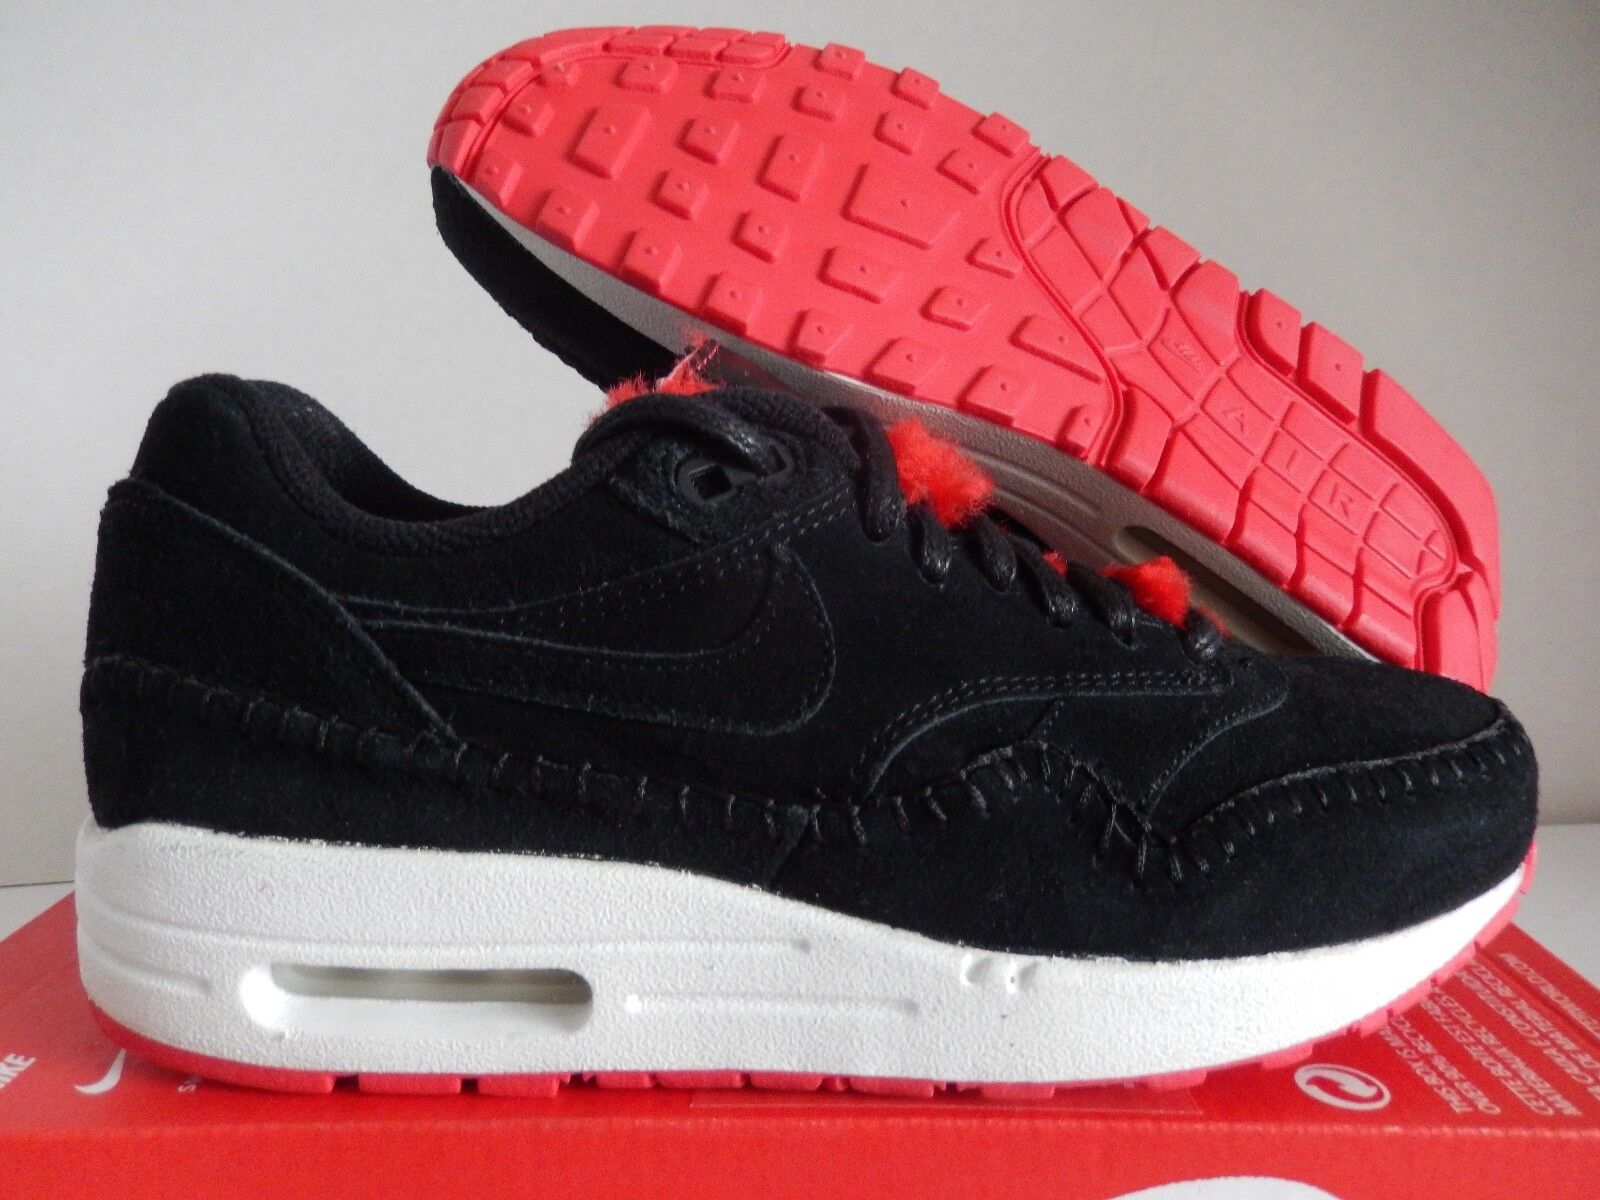 WMNS NIKE AIR MAX 1 PREMIUM BLACK-BLACK-ACTION RED-SUMMIT SZ 6.5 [454746-010]